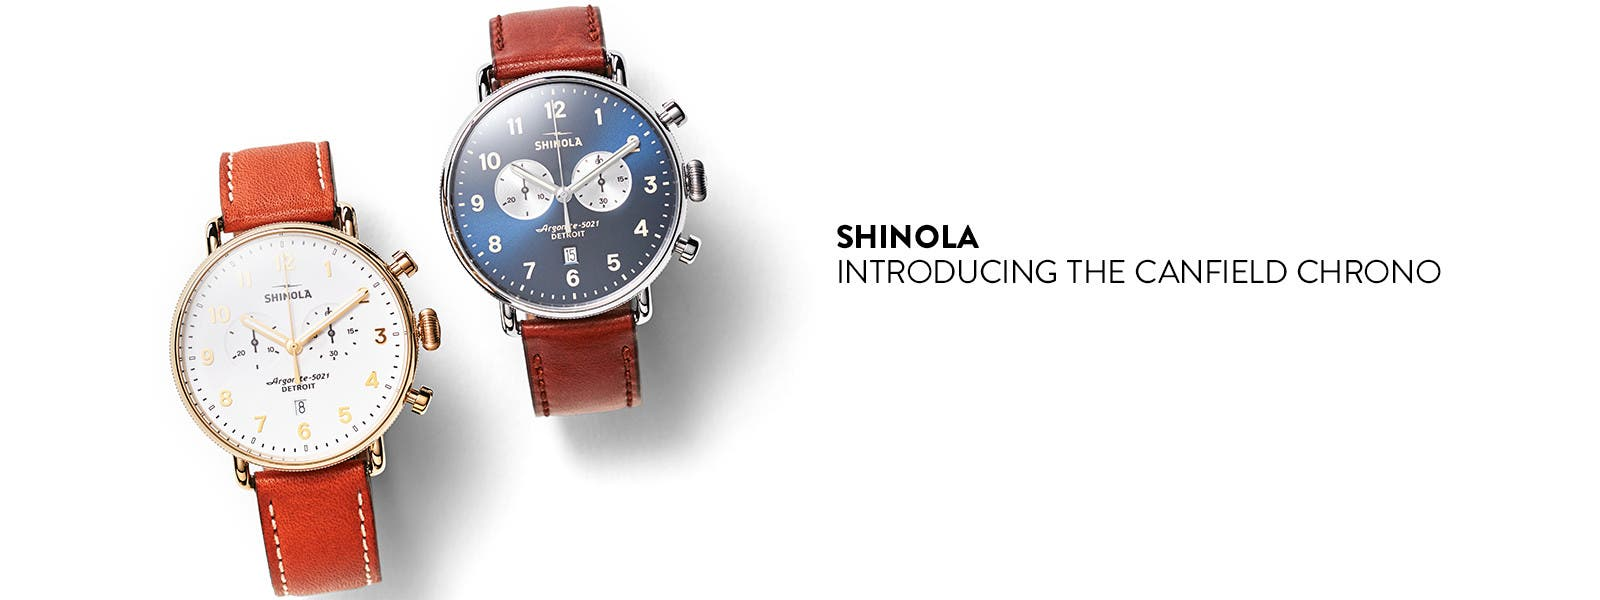 Shinola, Introducing the Canfield Chrono.